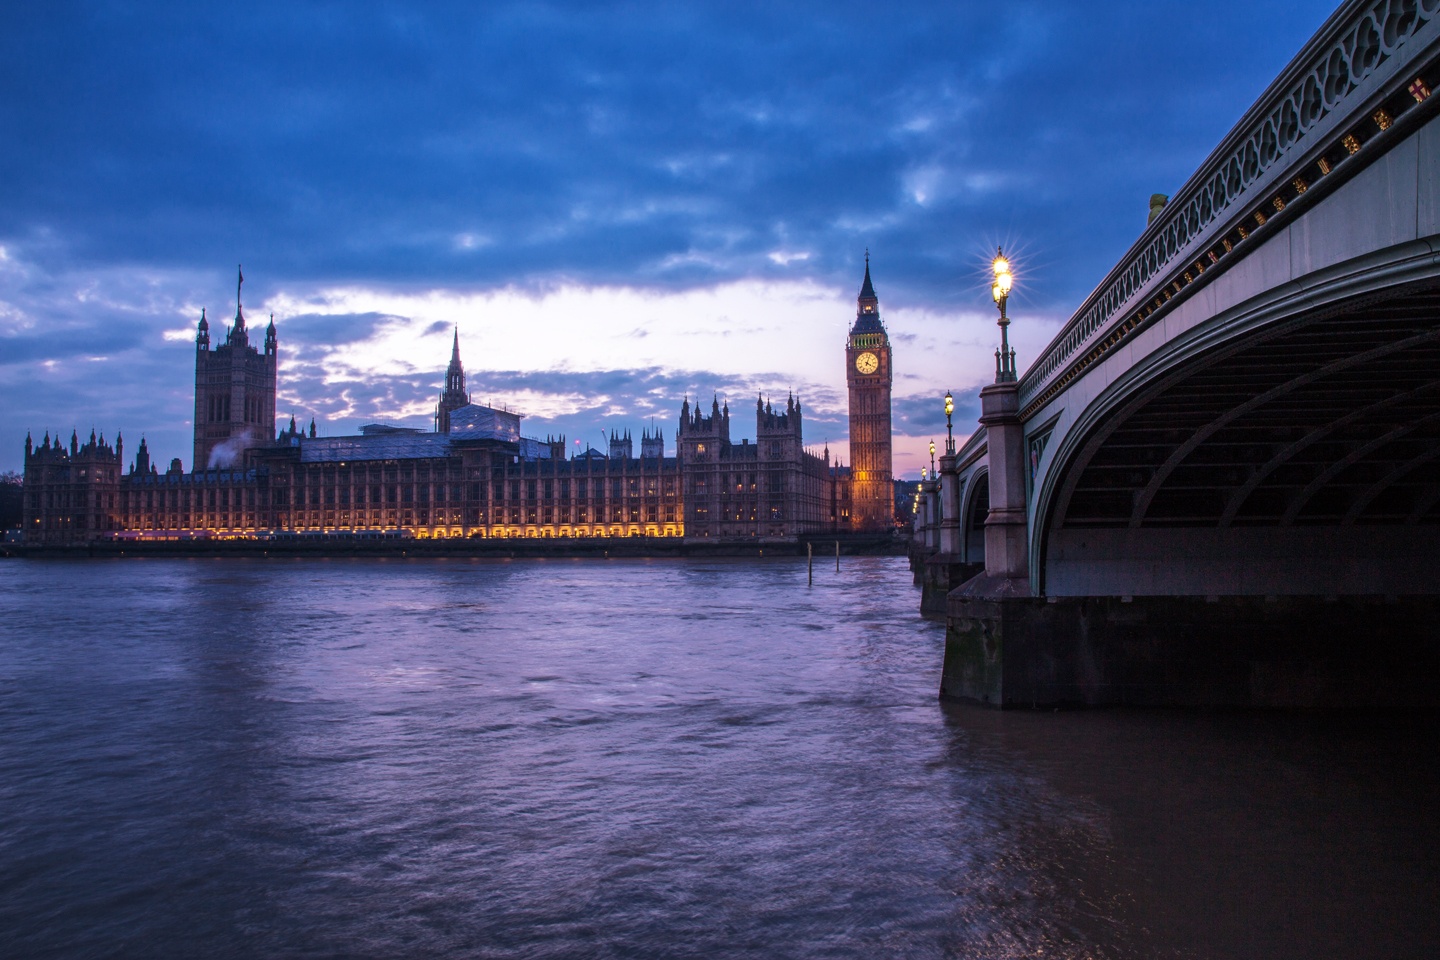 25 Photos to Inspire You to Visit London